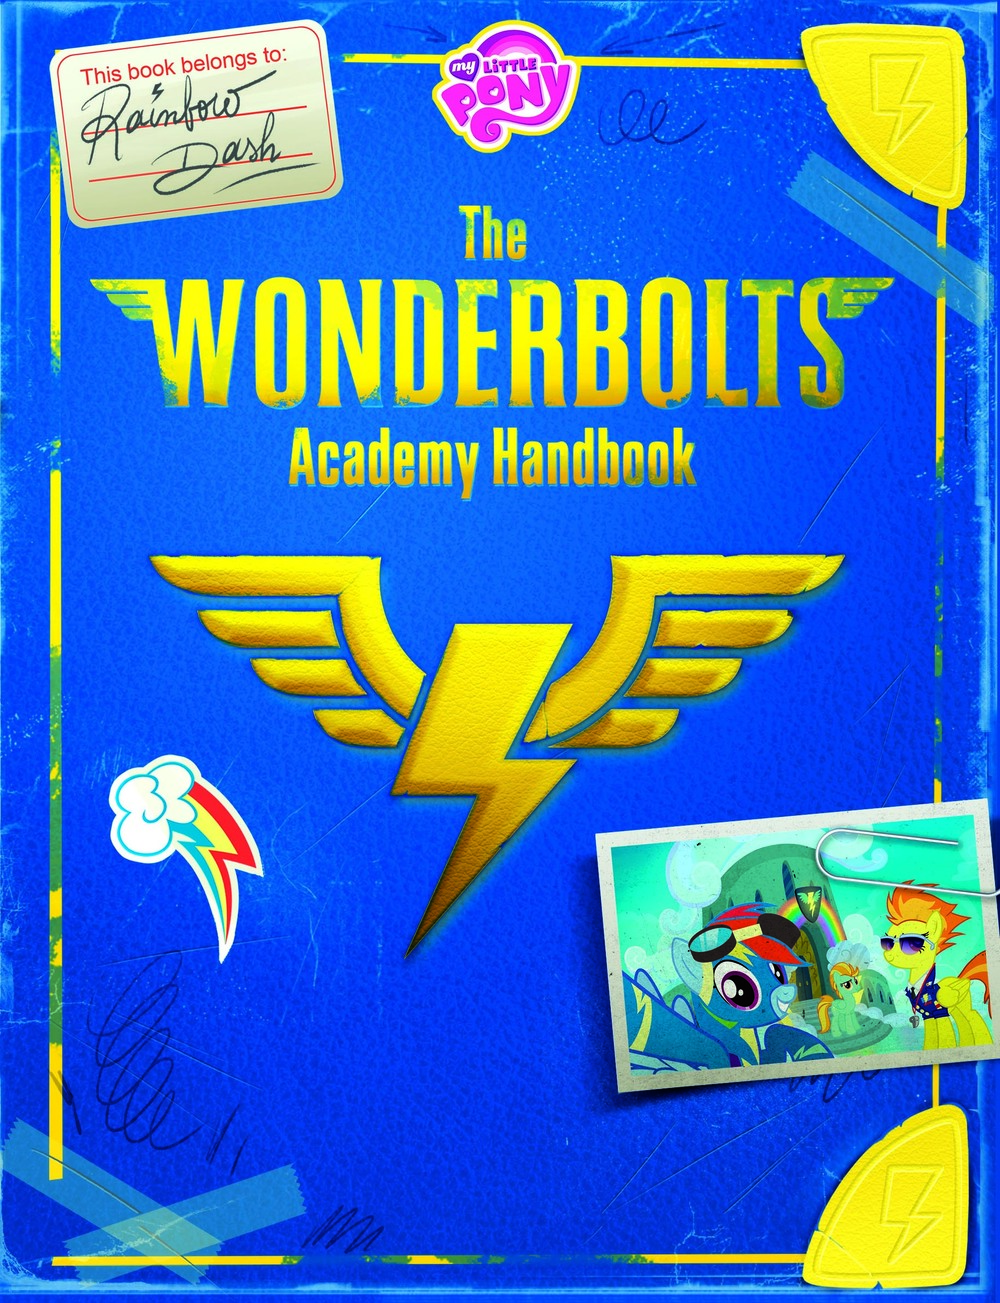 MLP_Wonderbolts_POB_CS.jpg